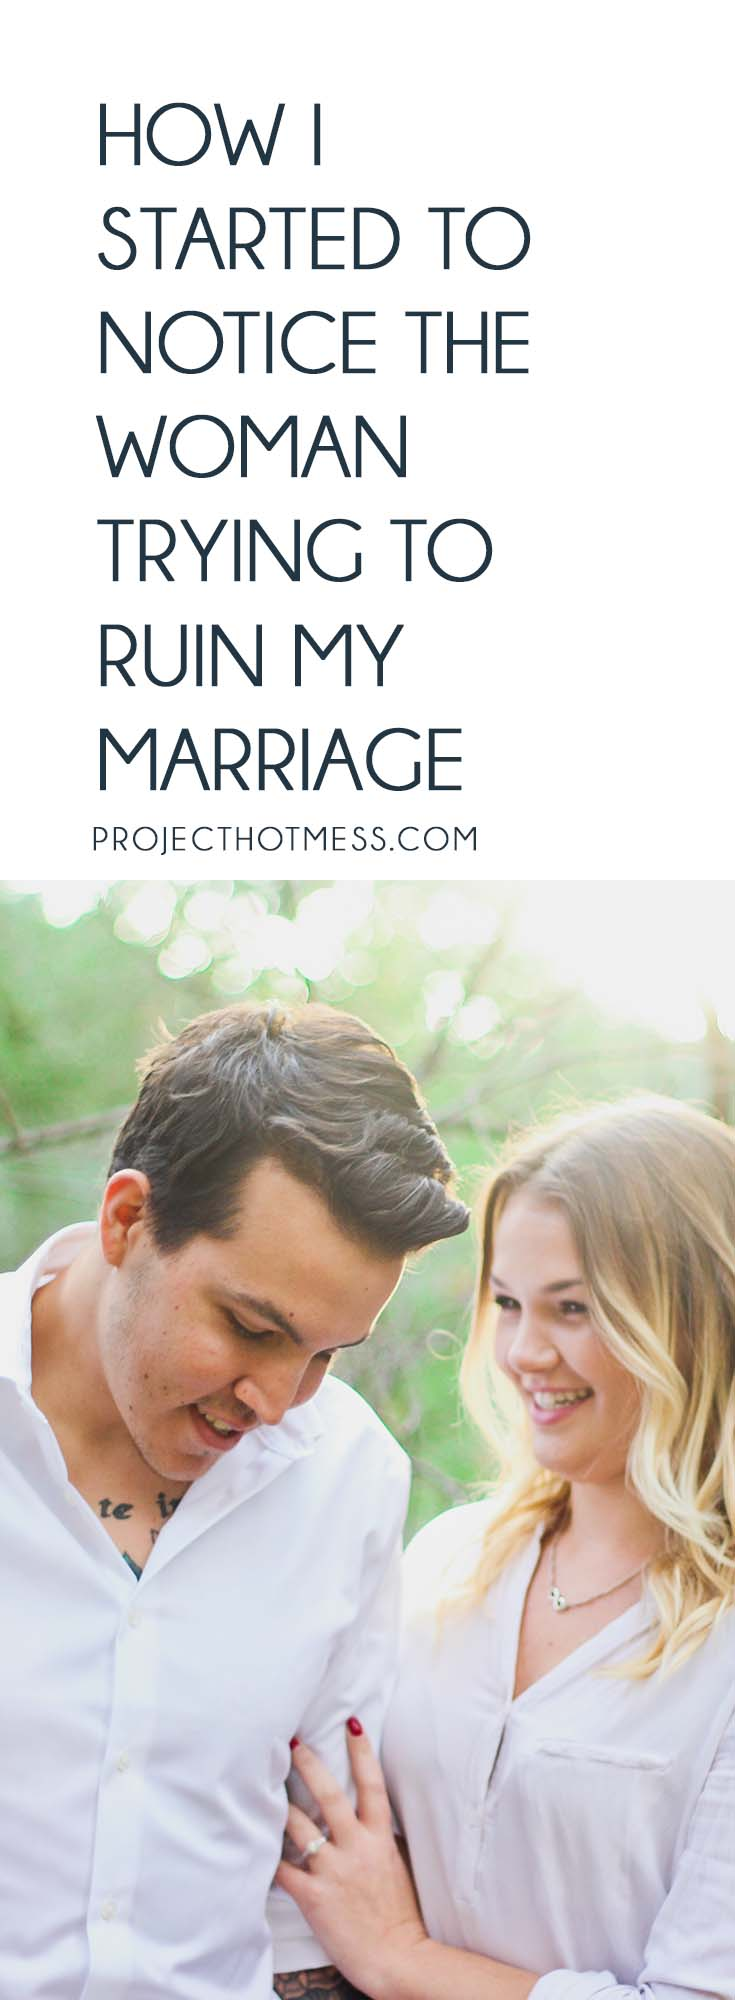 It all started innocently at first, and then I started to notice the woman trying to ruin my marriage. Stand up for your marriage and trust your husband. #marriageadvice #marriageproblems #relationshipadvice #marriagetips